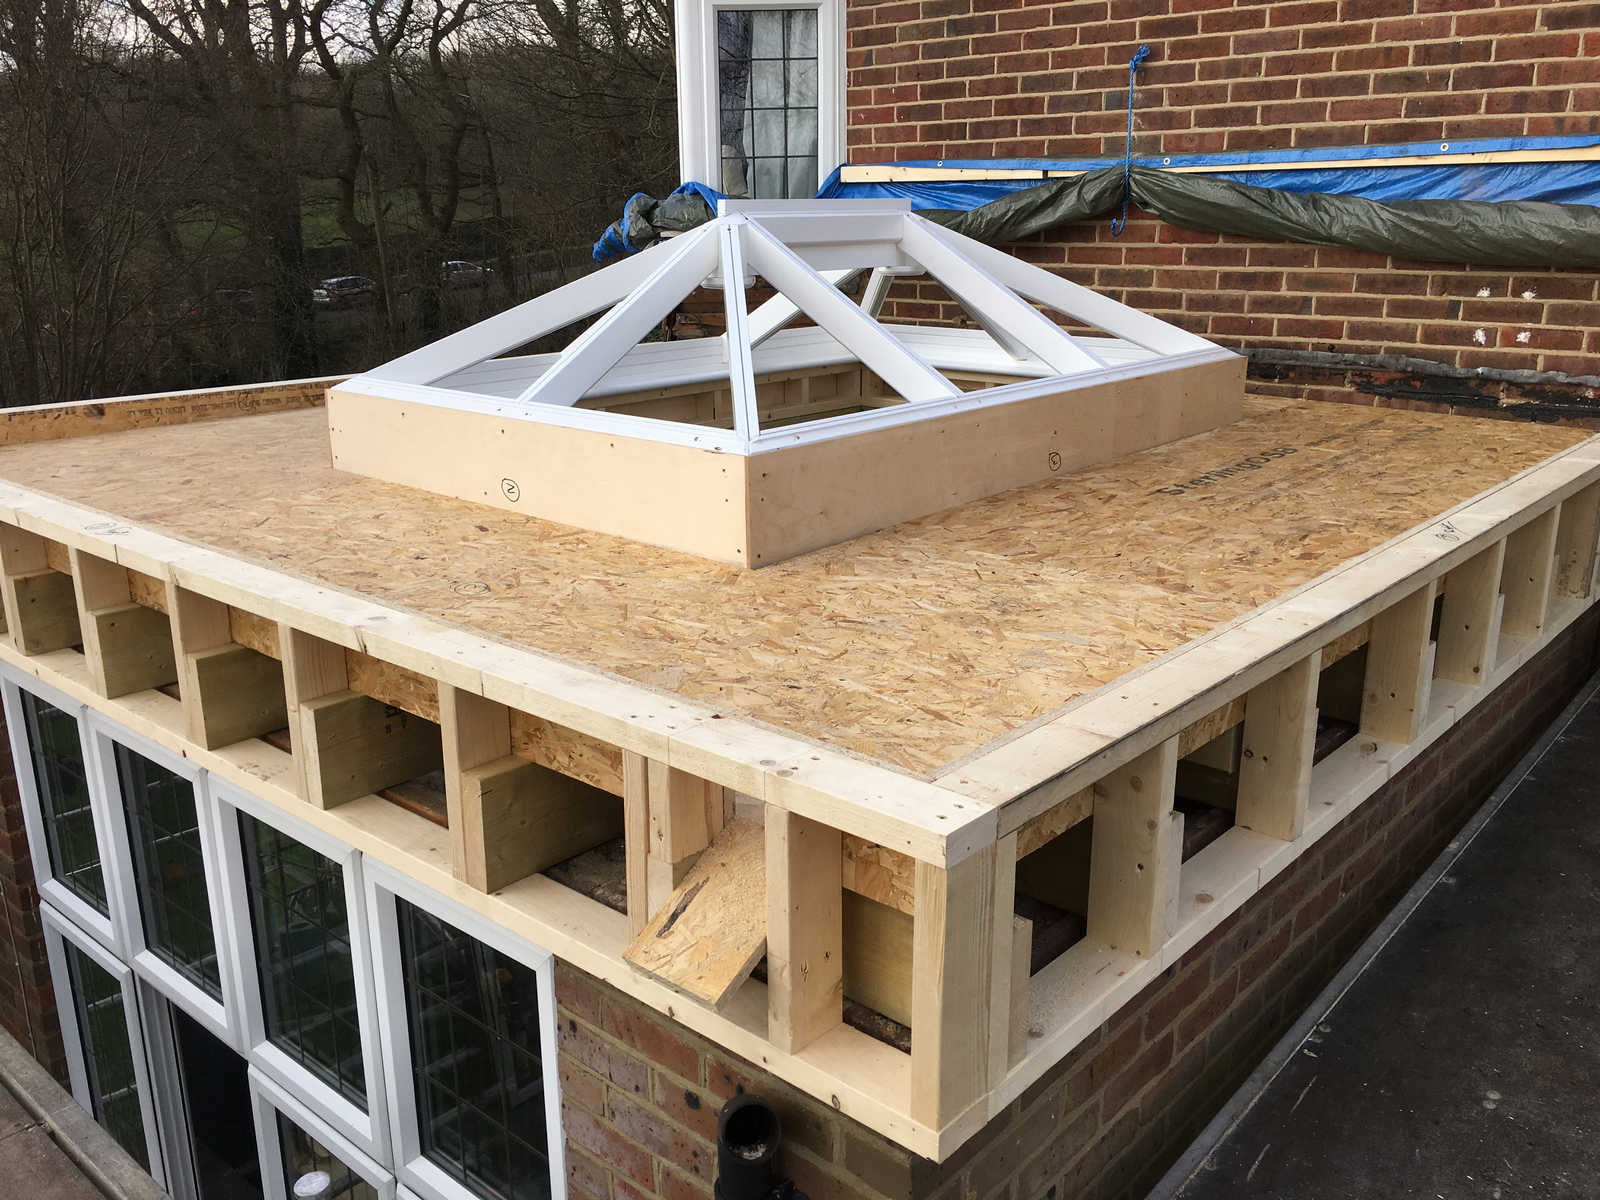 Timber flat roofs picture sc 1 st construction studies for Cost of building a roof